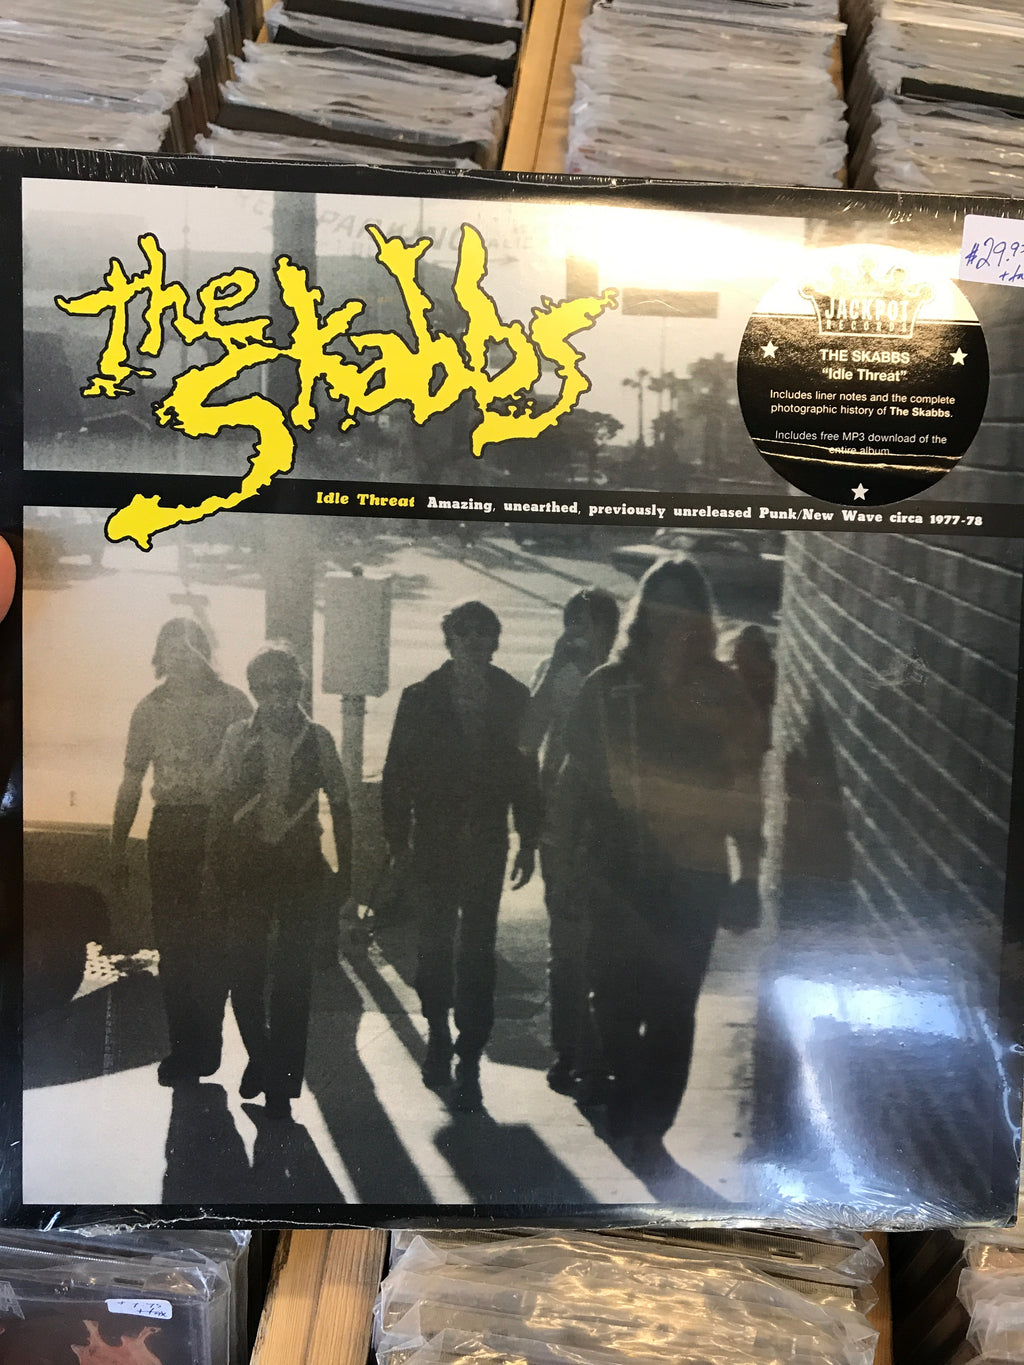 Skabbs, The - Idle Threat - New Vinyl LP